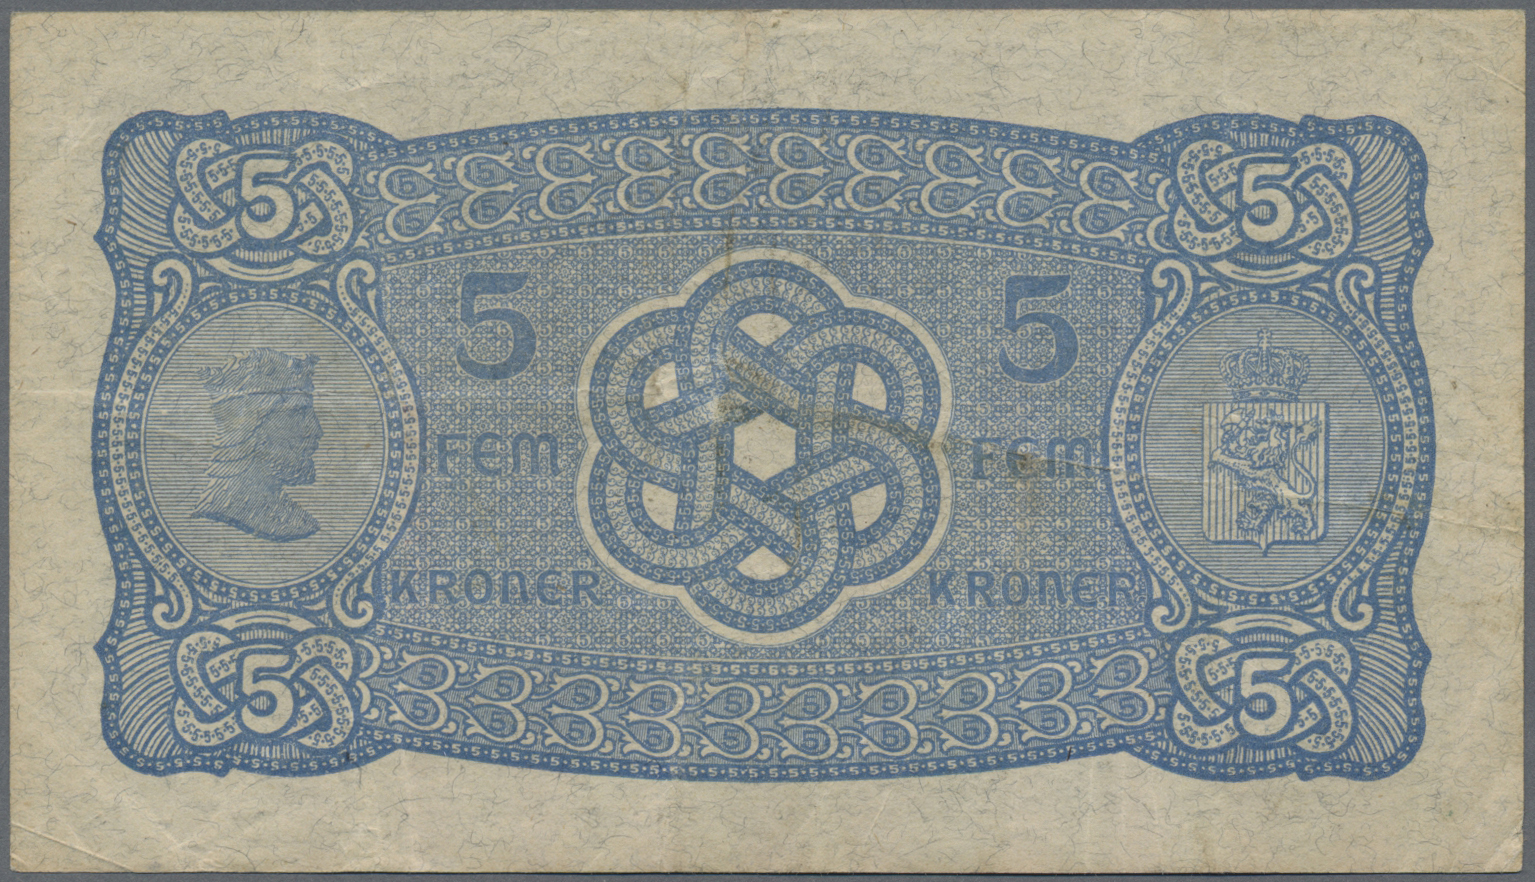 Lot 00569 - Norway / Norwegen | Banknoten  -  Auktionshaus Christoph Gärtner GmbH & Co. KG Sale #48 The Banknotes